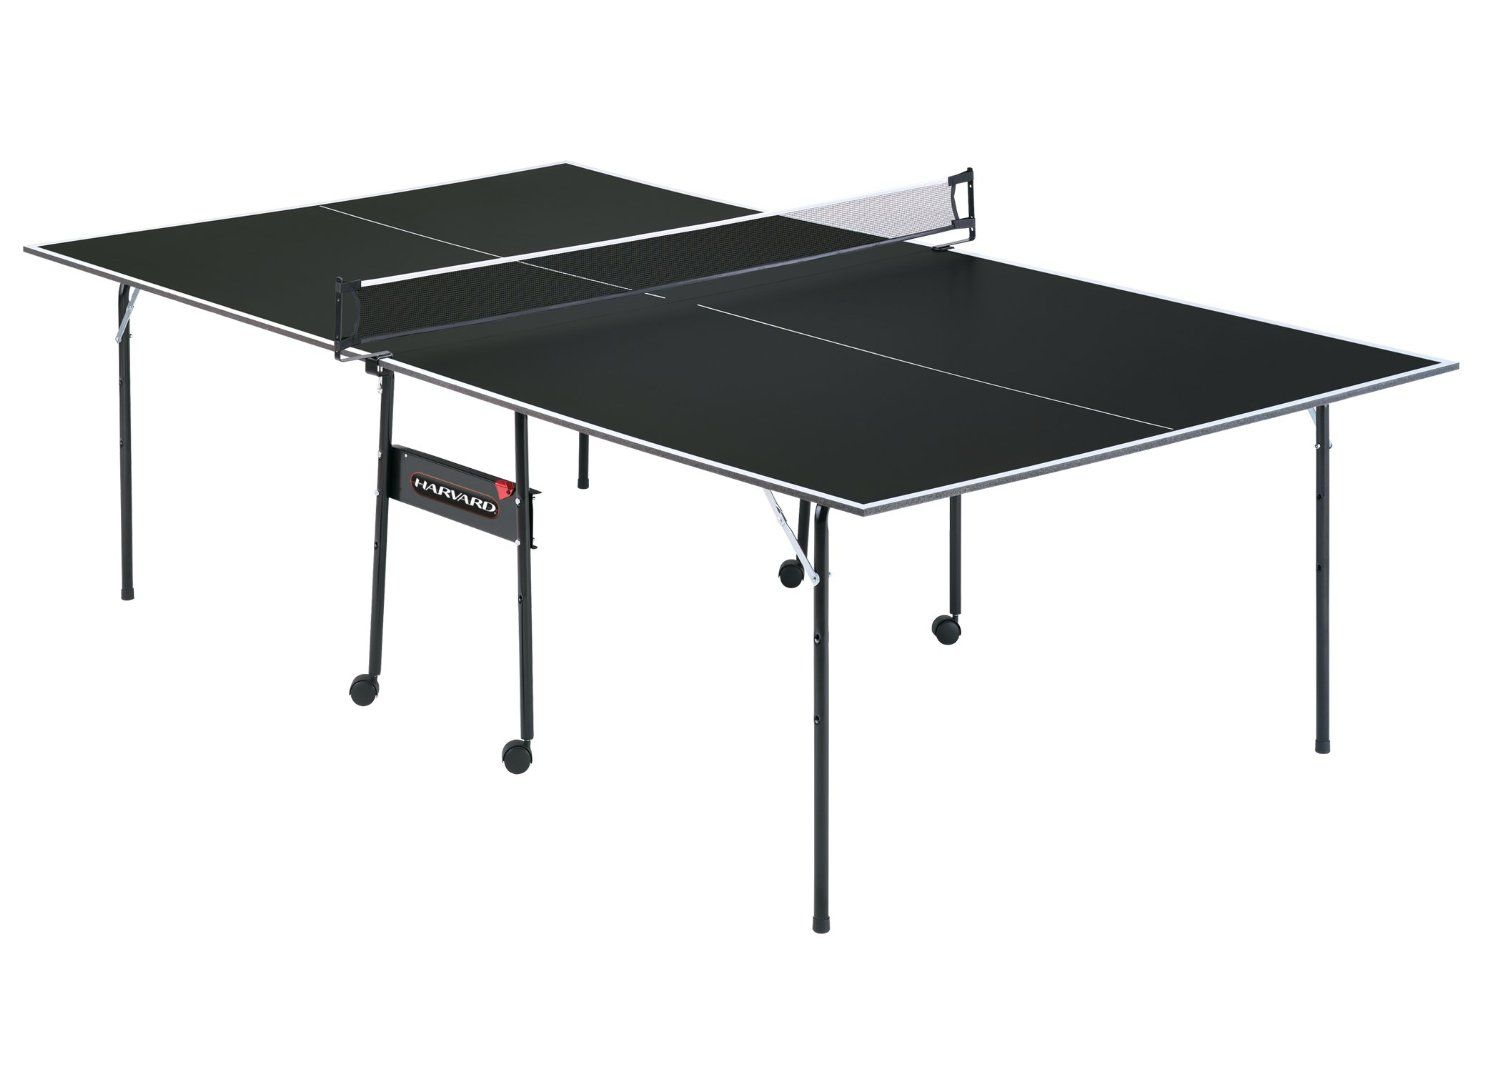 Table Tennis Table Review: Stiga Ping Pong Table | Hobbies ...